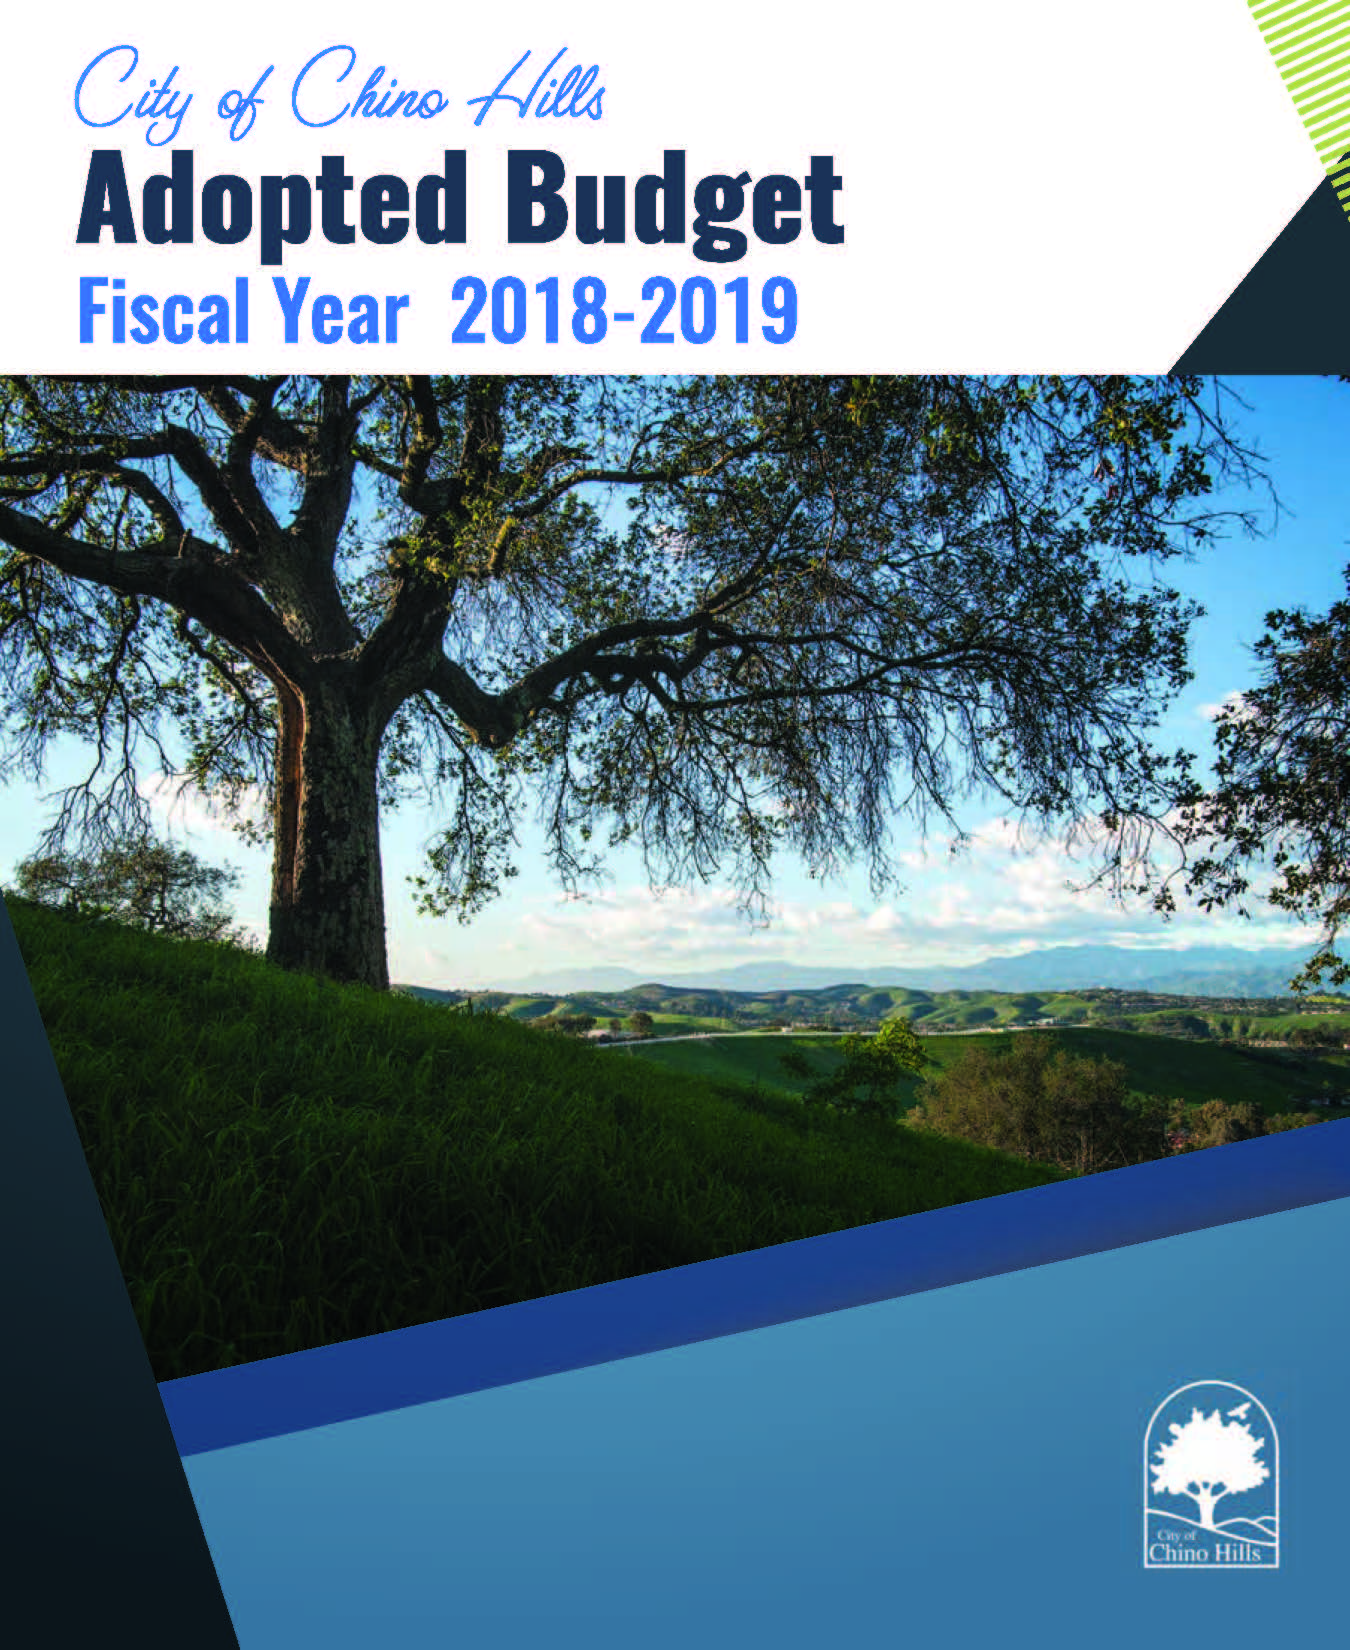 photo of adopted budget book cover